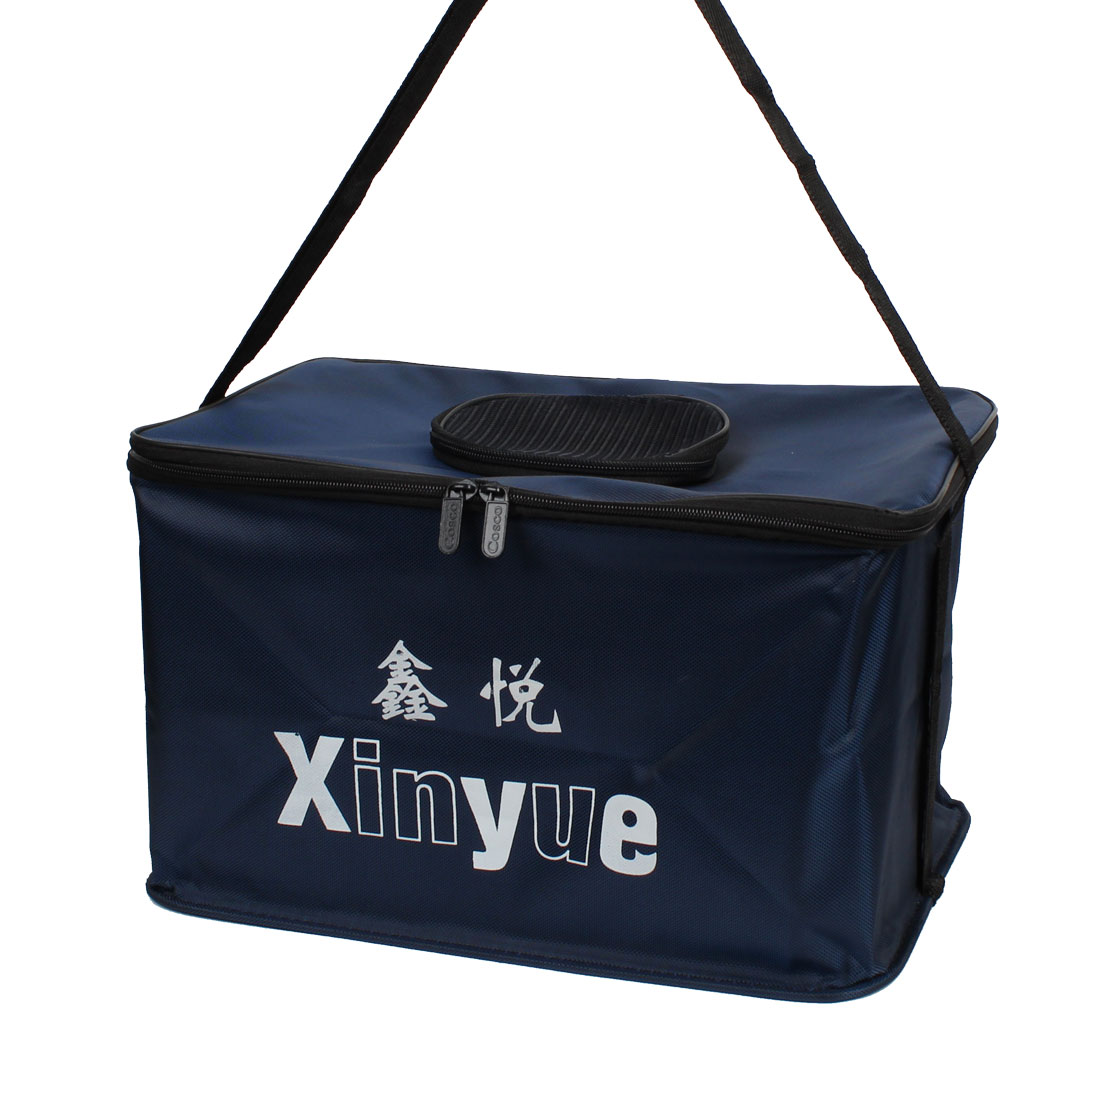 Poratable Should Strap Dark Blue Zippered Rectangle Folding Fishing Fish Bucket